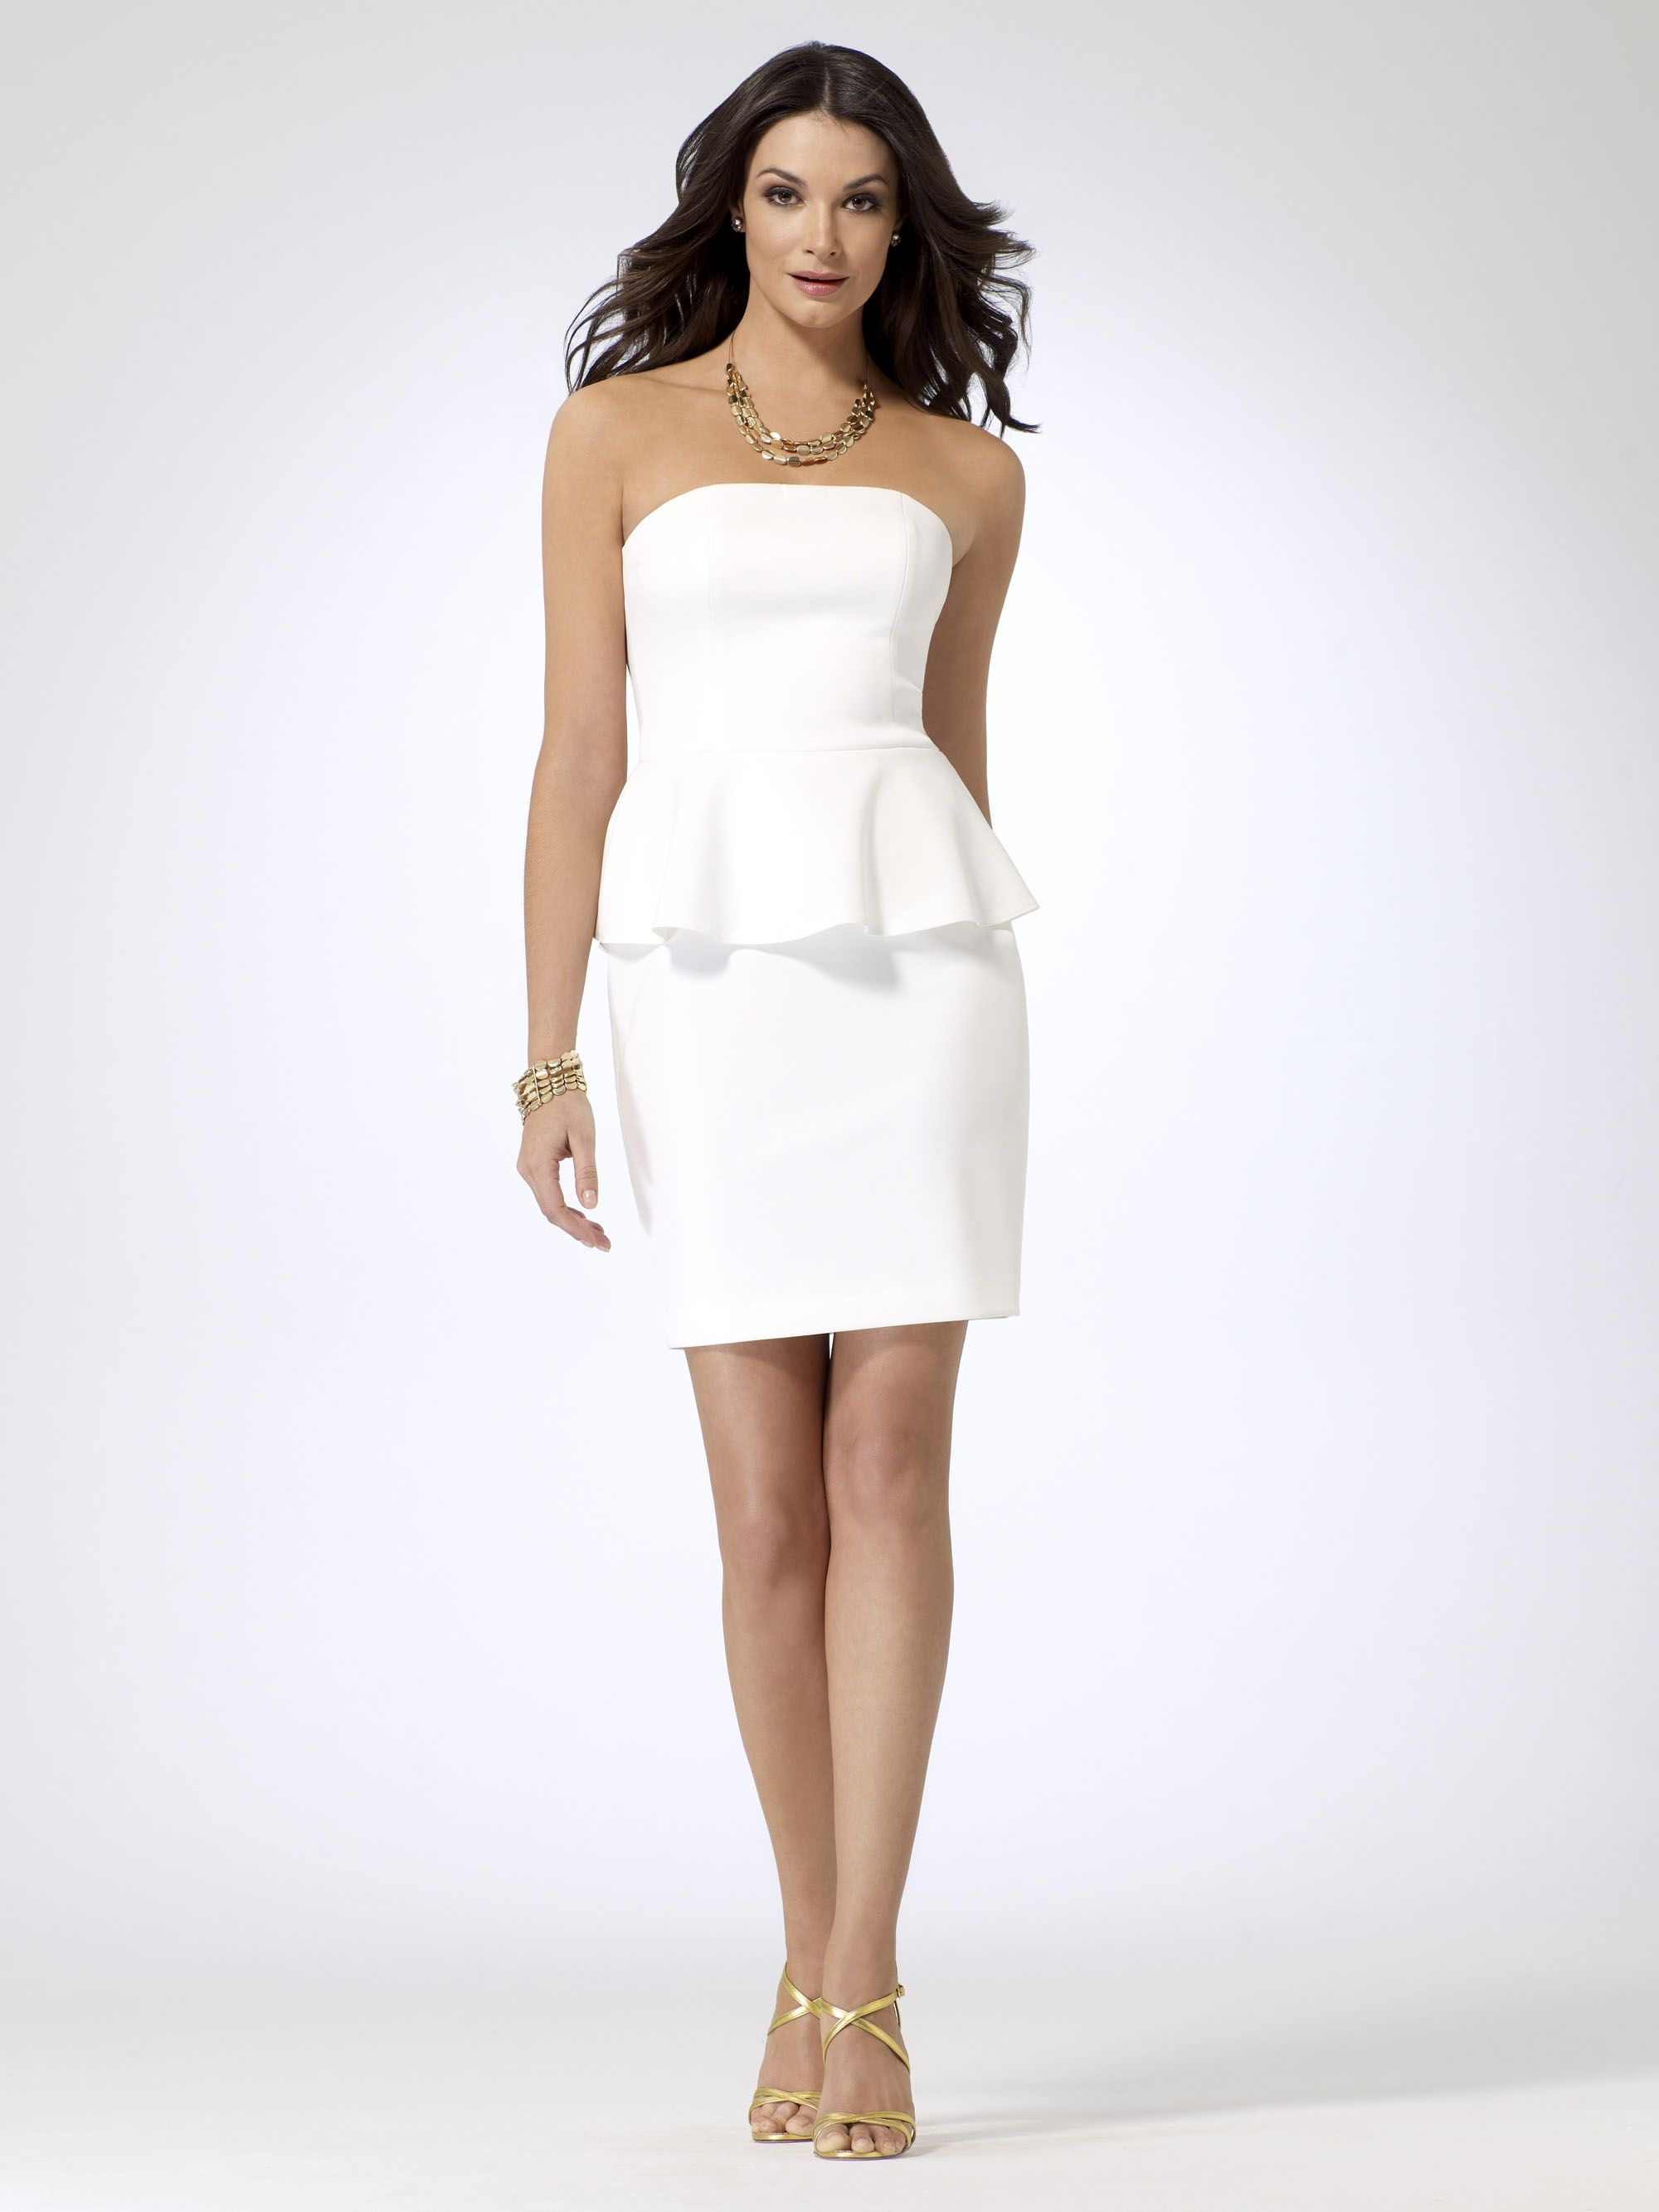 Yacht party cocktail dress